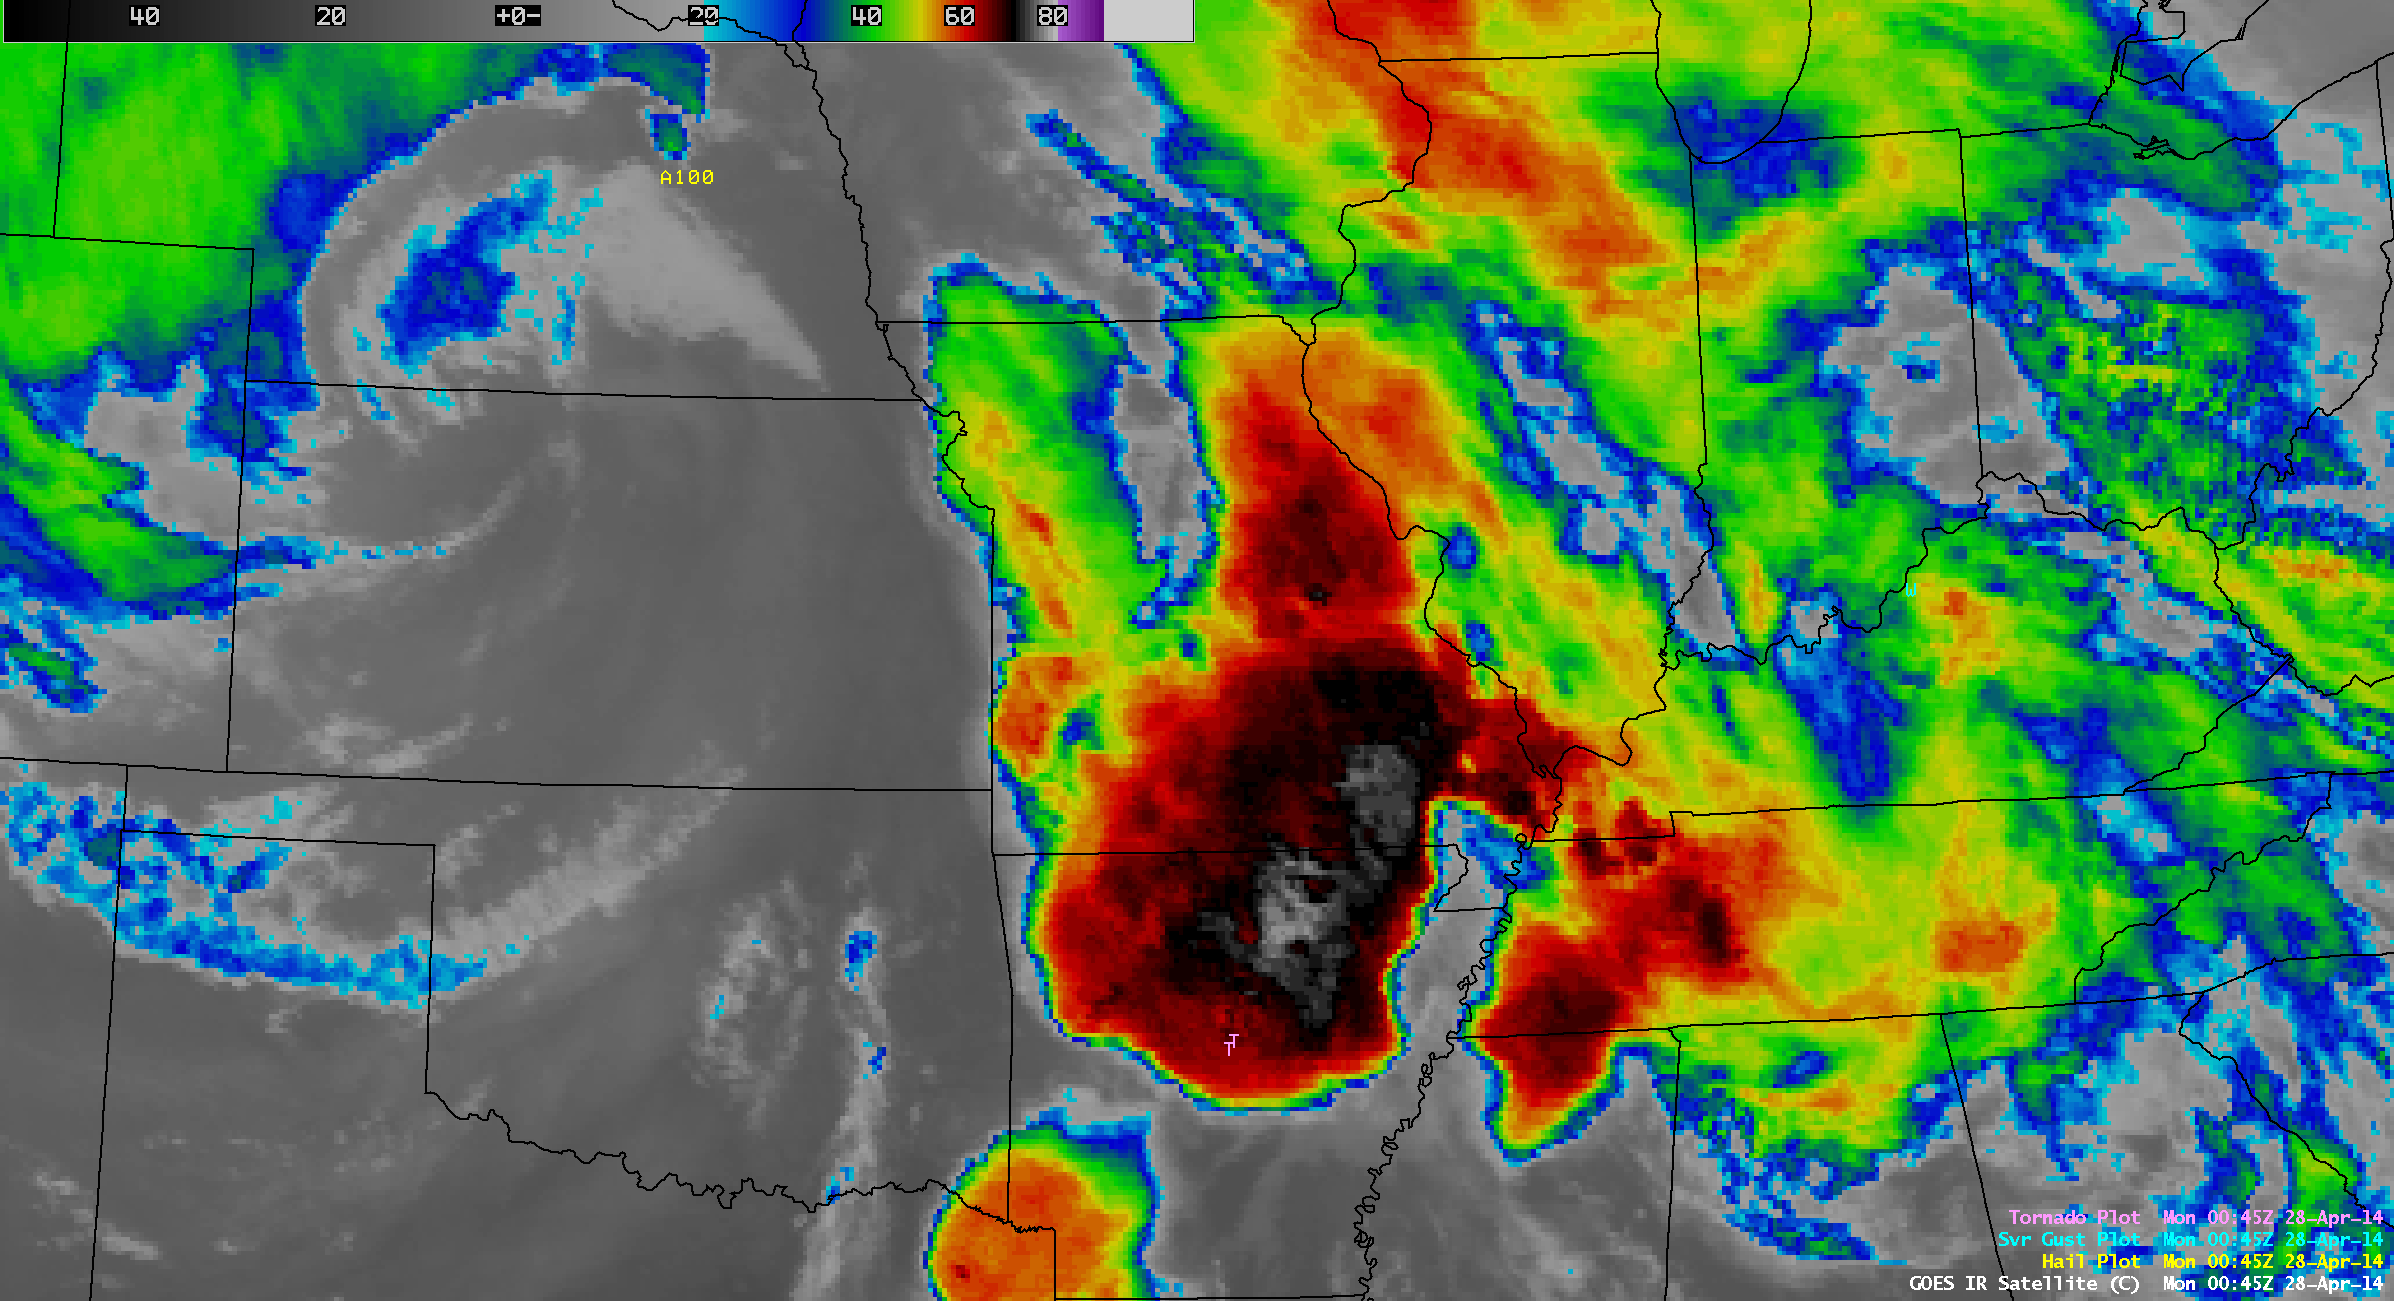 GOES-13 10.7 µm IR channel images, with overlays of SPC storm reports (click to play animation)